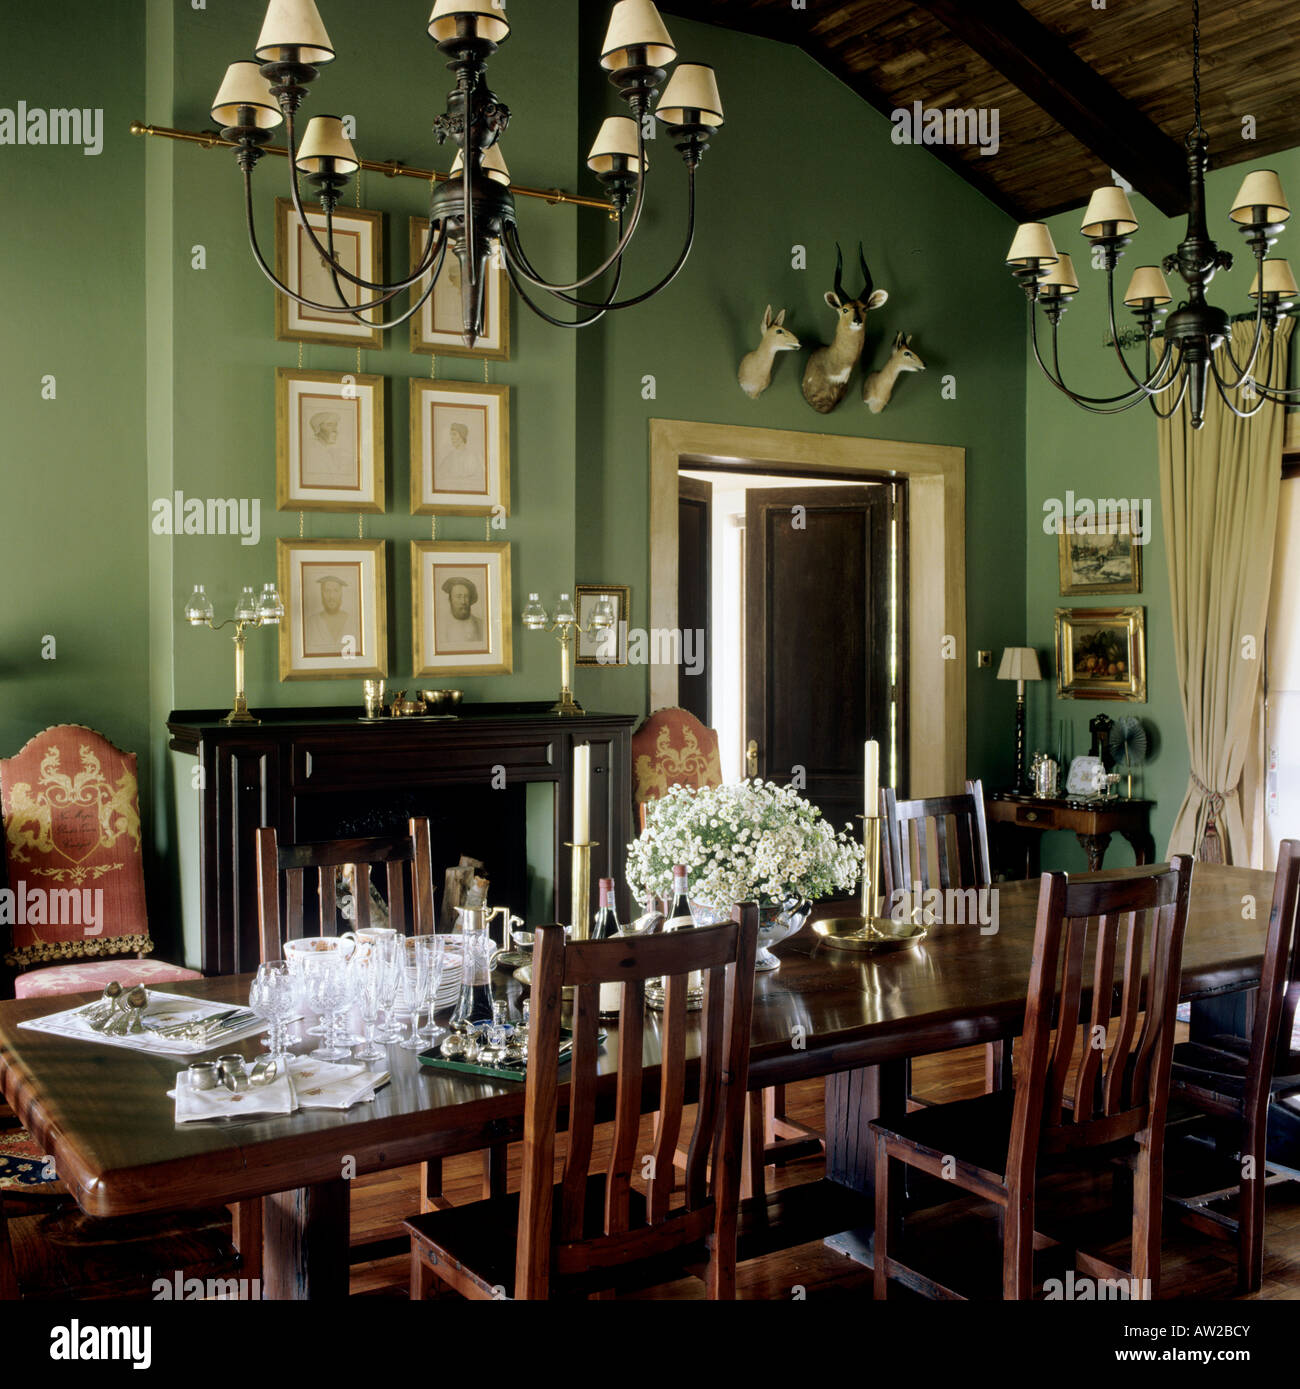 Dining Room With Green Walls And Wooden Furniture